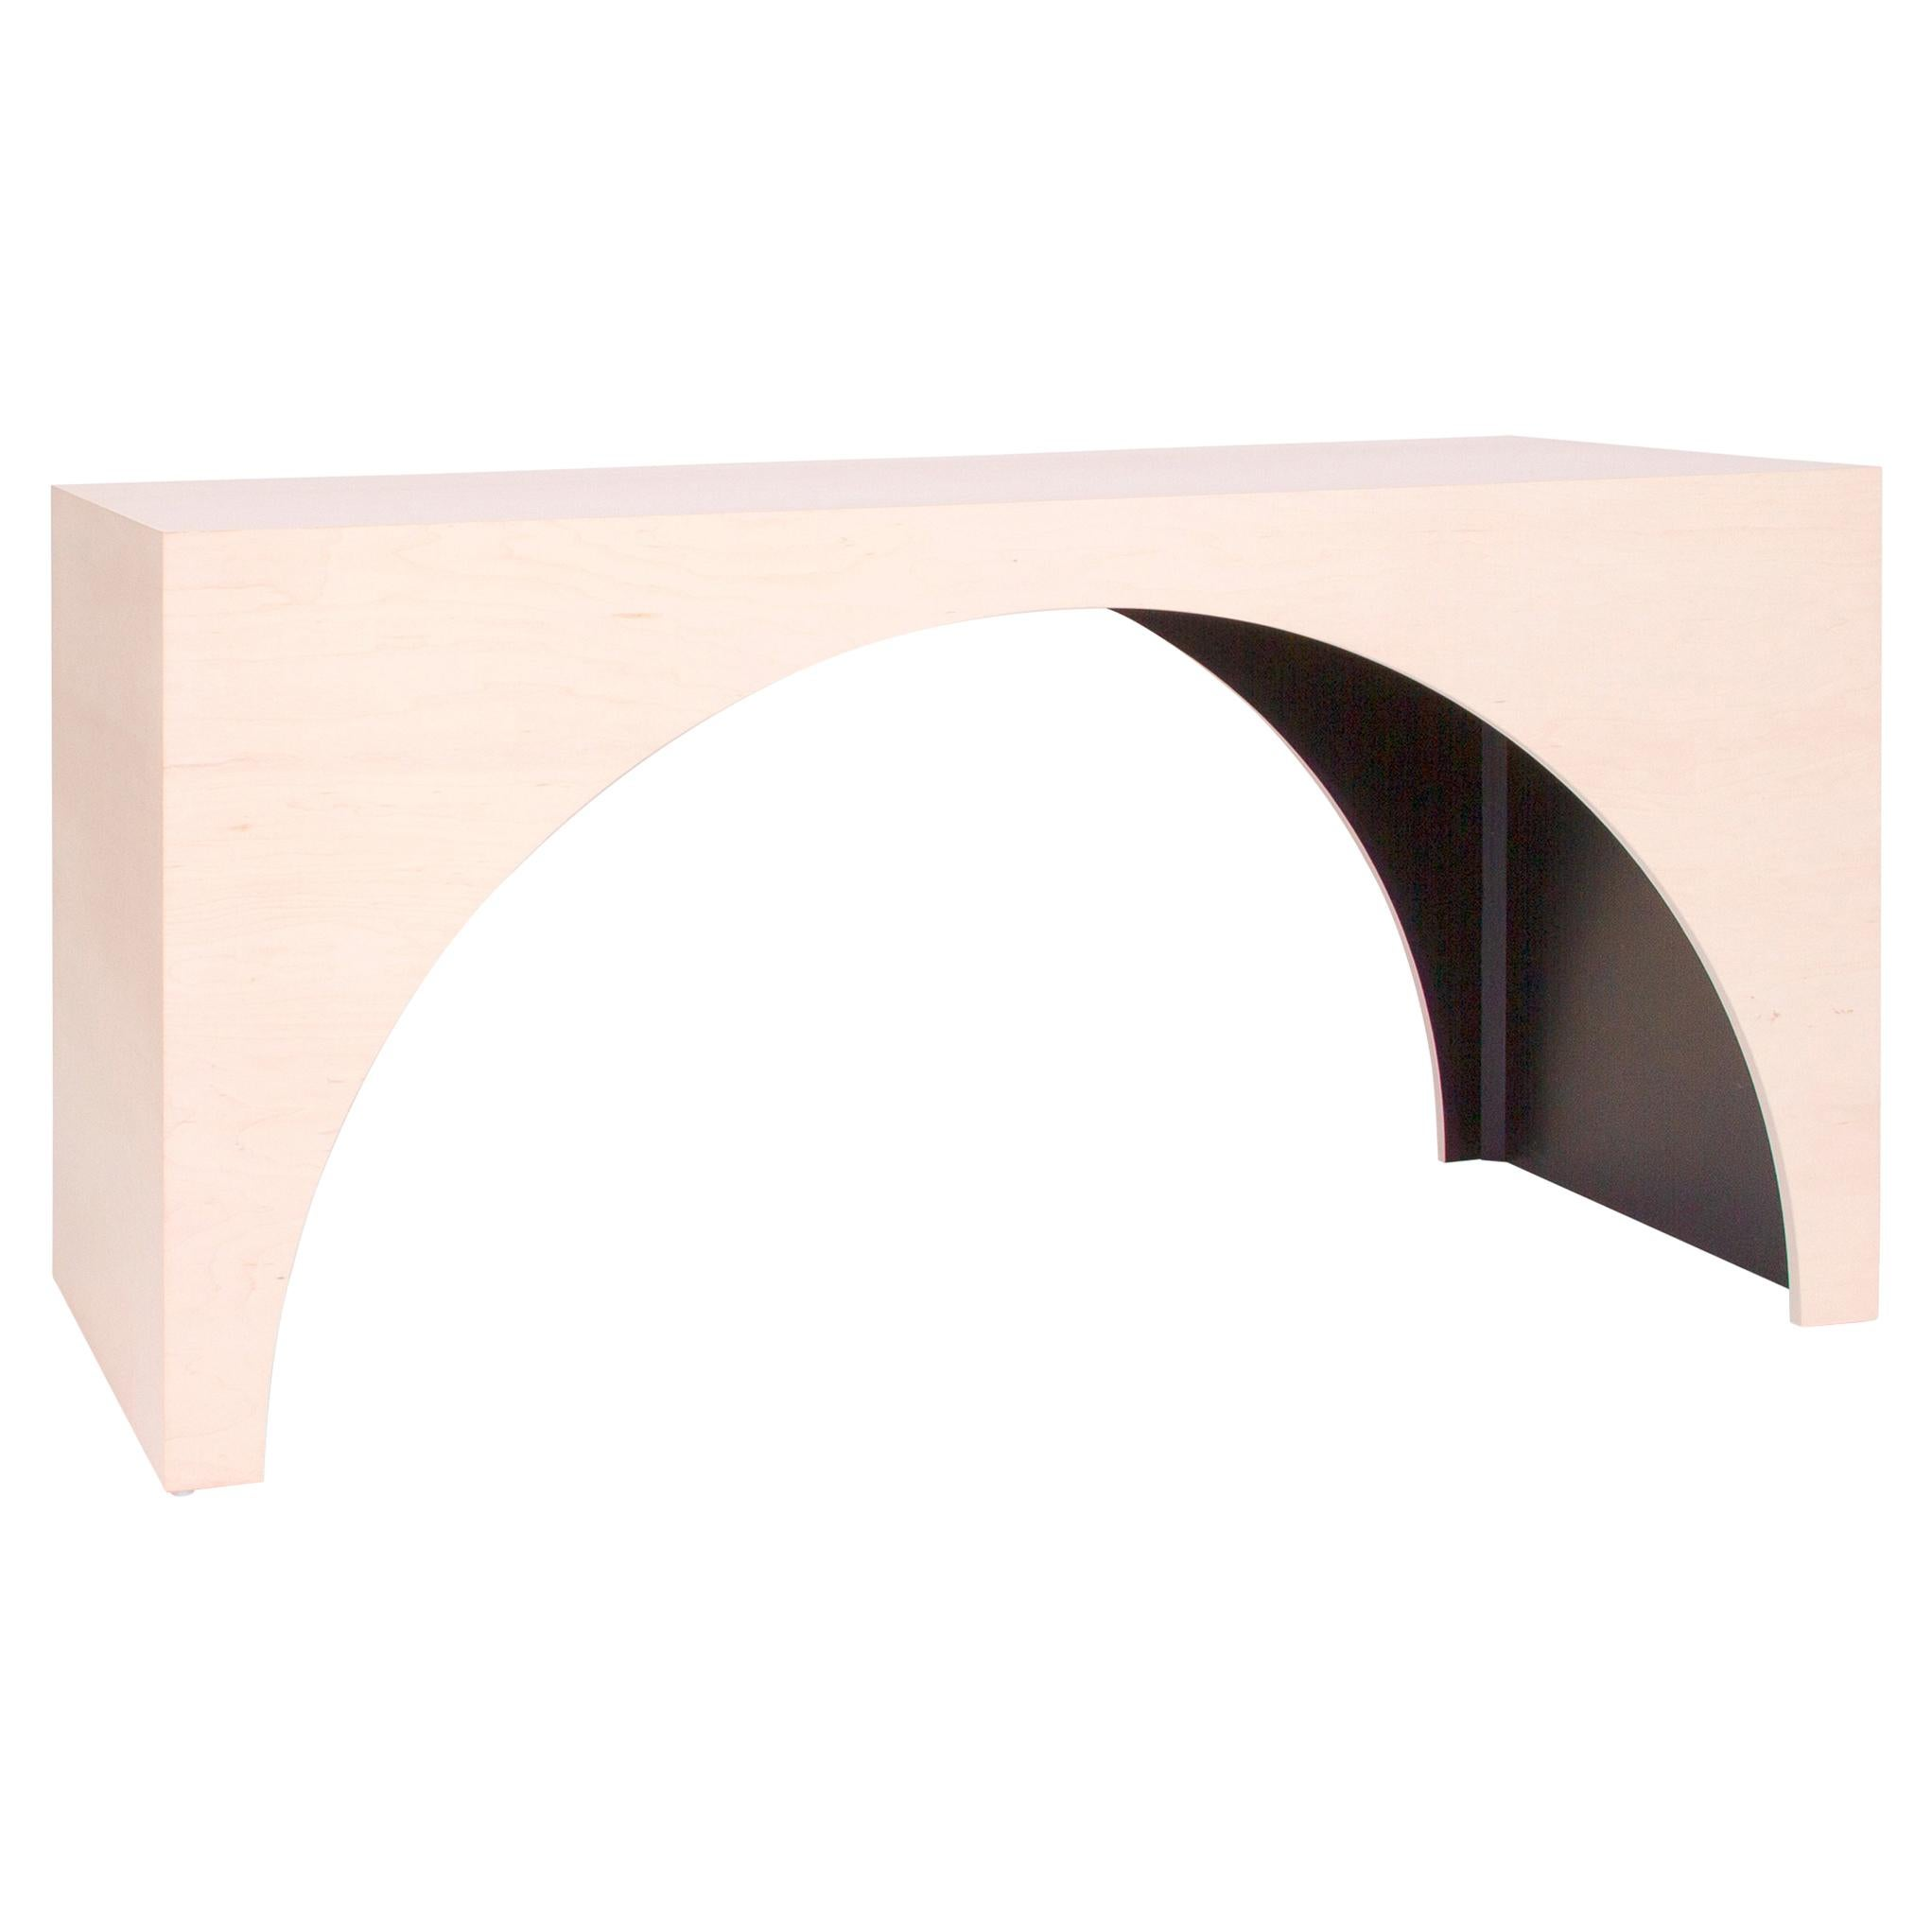 ARC Desk in Bleached Maple Veneer and Black Stained Interior by Estudio Persona